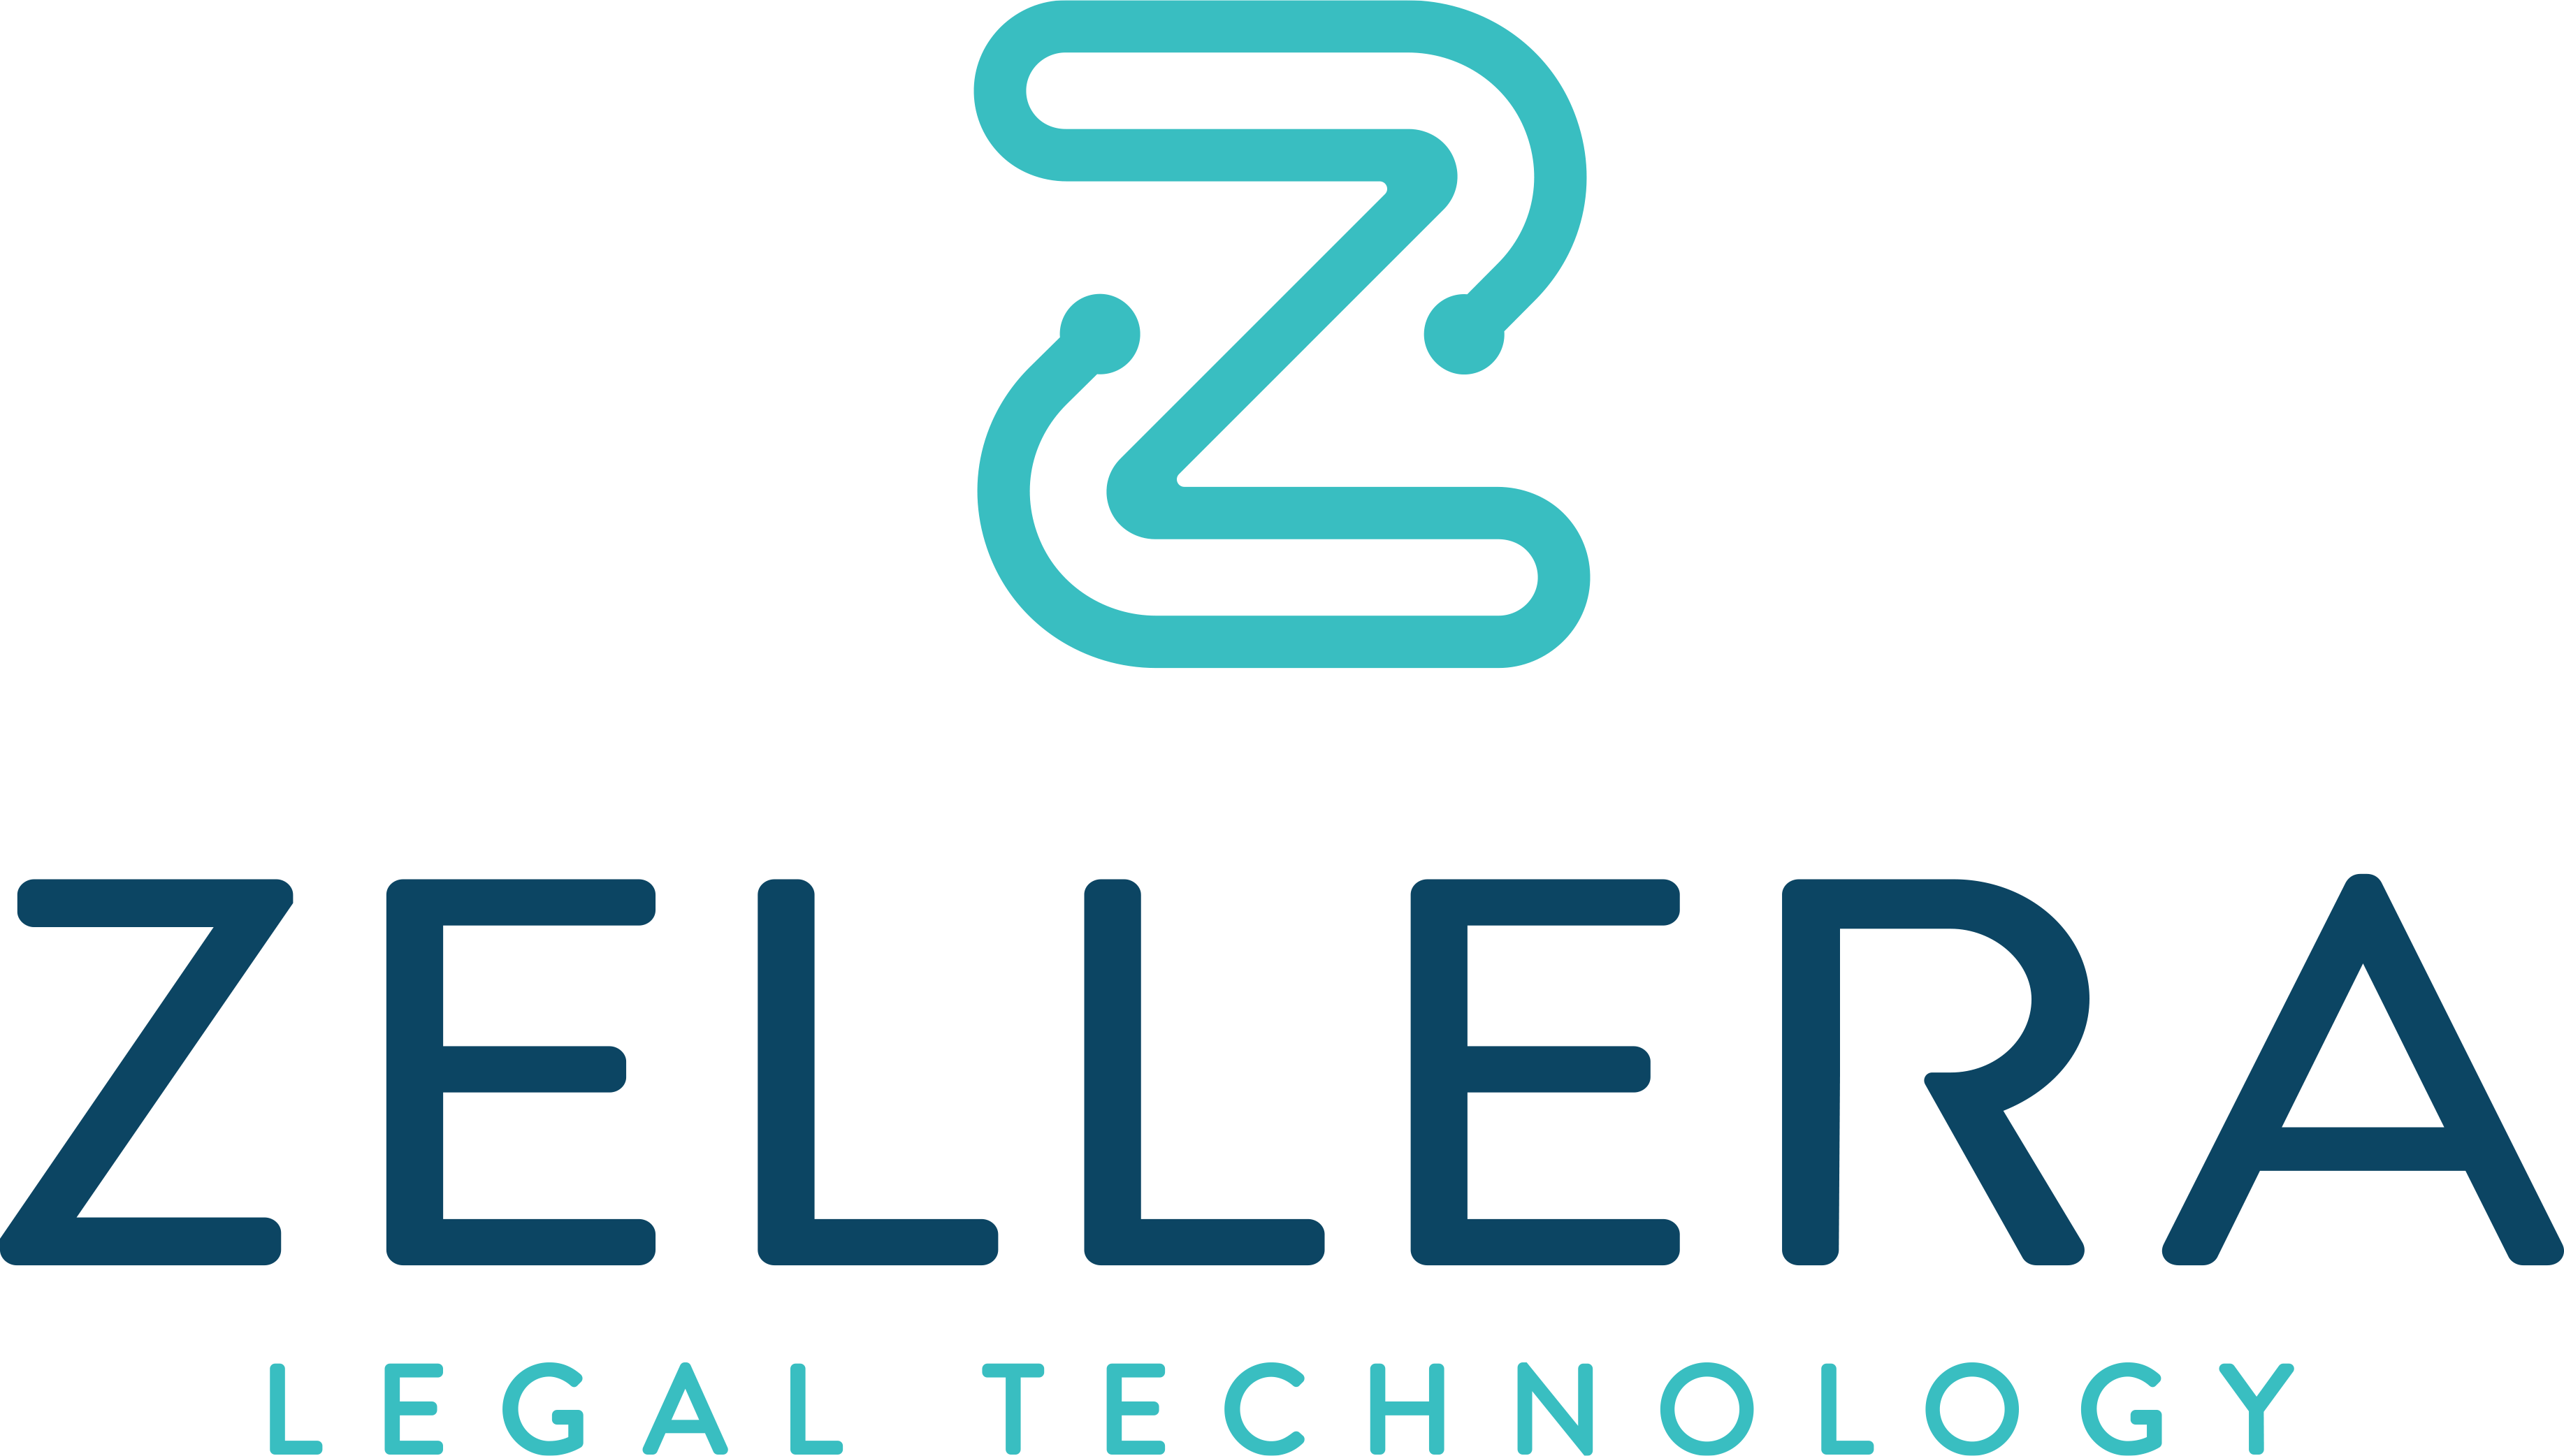 0333 111 1111 info@zelleralegaltechnology.co.uk